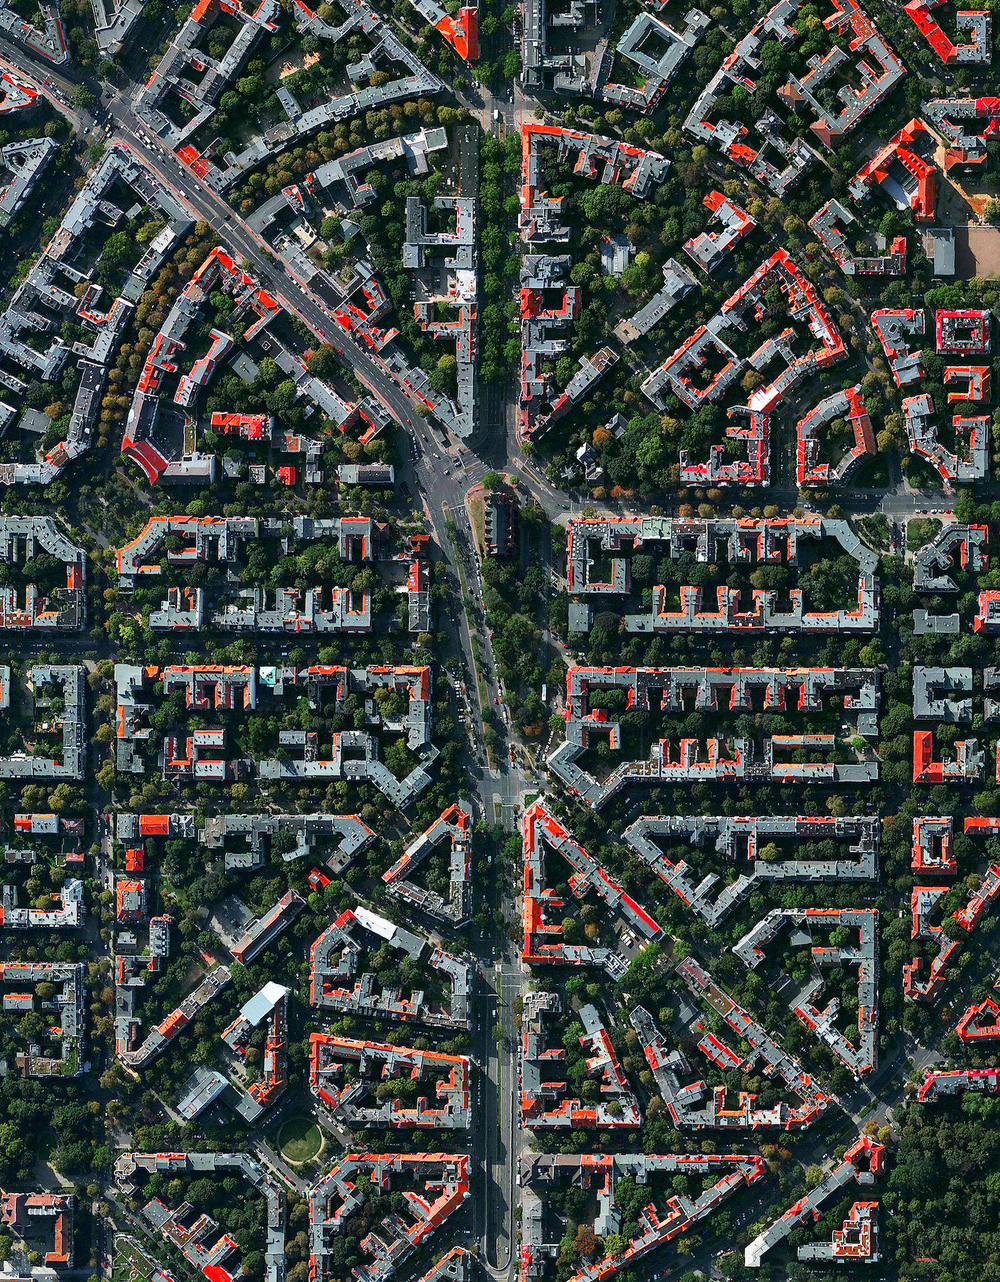 2/18/2016 Friedenau Berlin, Germany 52°29′00″N 13°22′00″E   Friedenau is a neighborhood in the southwestern suburbs of Berlin, Germany. The streets and squares of Friedenau are laid out in a geometric urban design known as a Carstenn Figure. This type of plan is characterized by a circular road that is divided by central avenue.